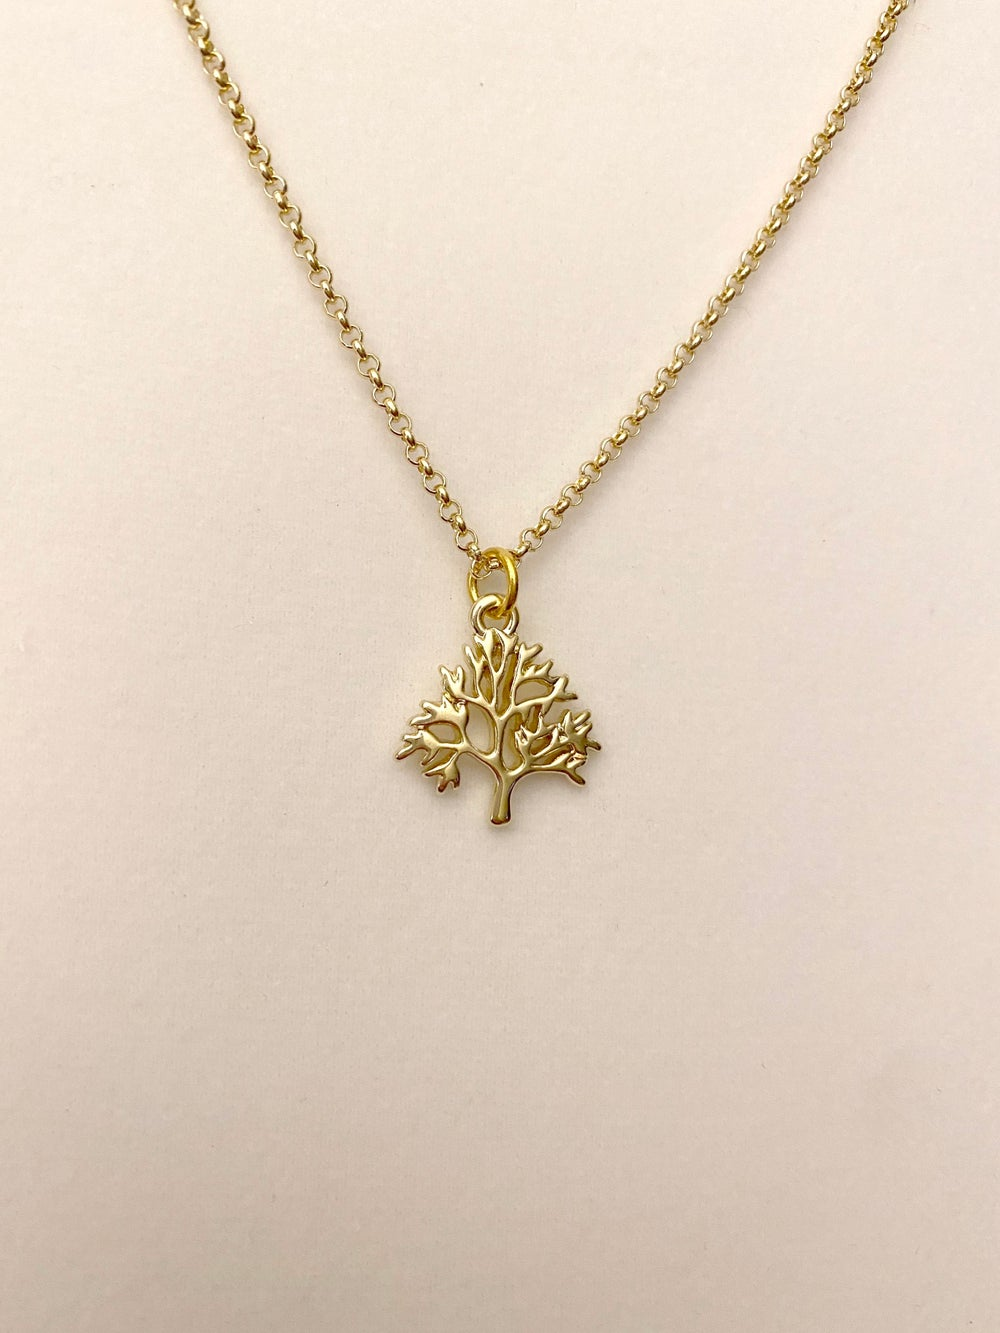 Gold Plated Tree of Life Pendant and Chain Necklace